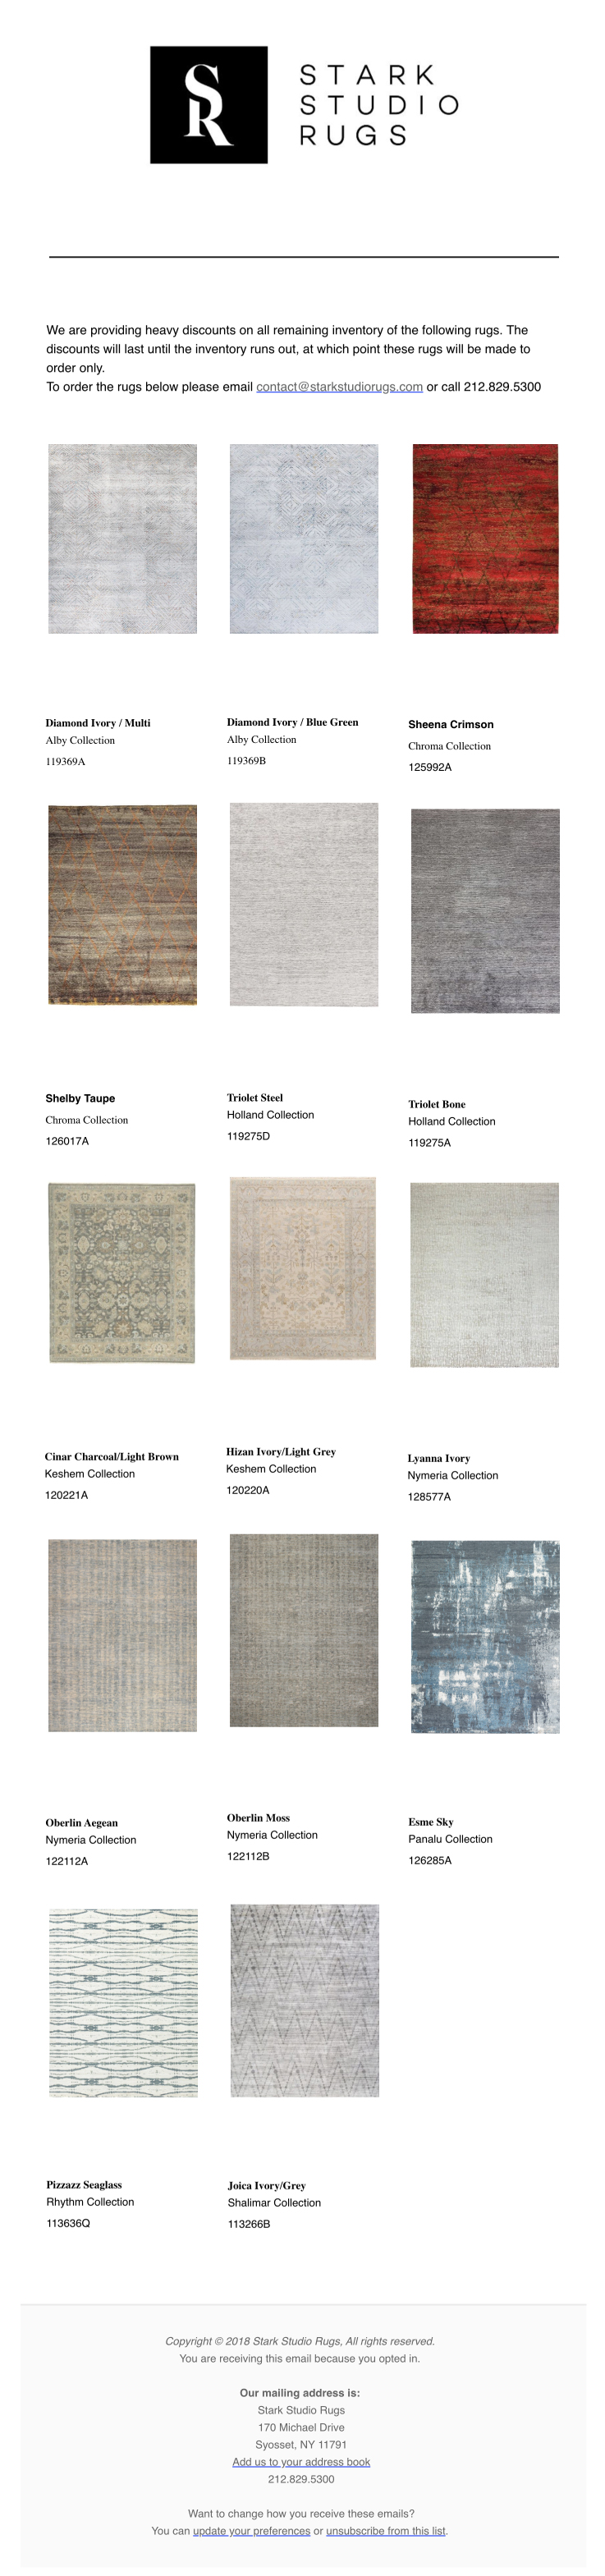 Stark Studio Rugs Post | Limited Stock Rugs | November 2019